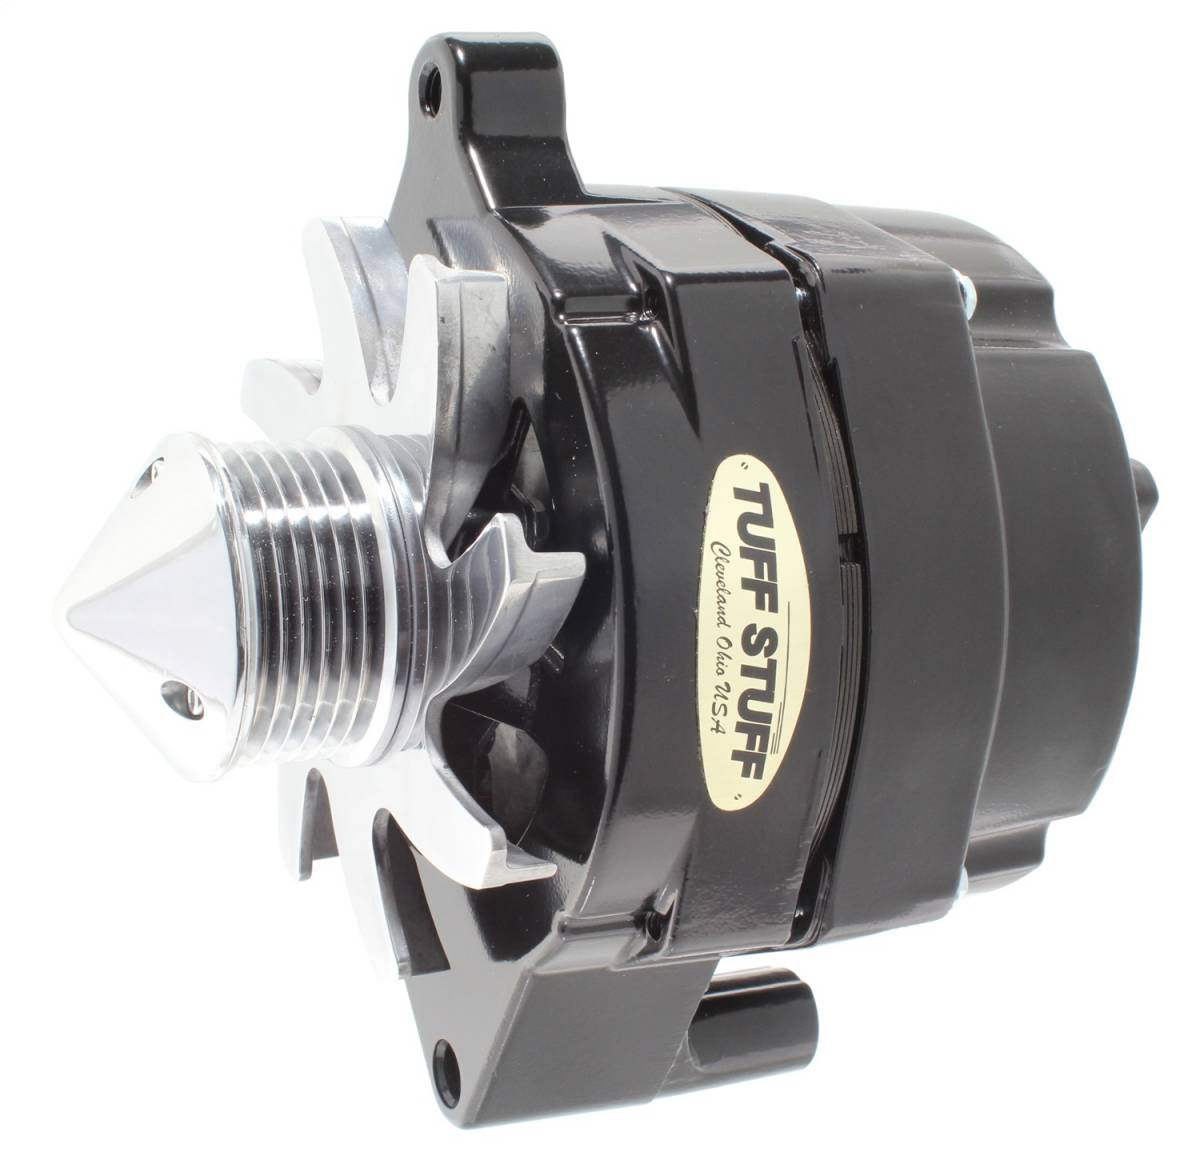 Tuff Stuff Performance - Silver Bullet Alternator 100 AMP Smooth Back 1 Wire 6 Groove Bullet Pulley Black 7068FBULL6G